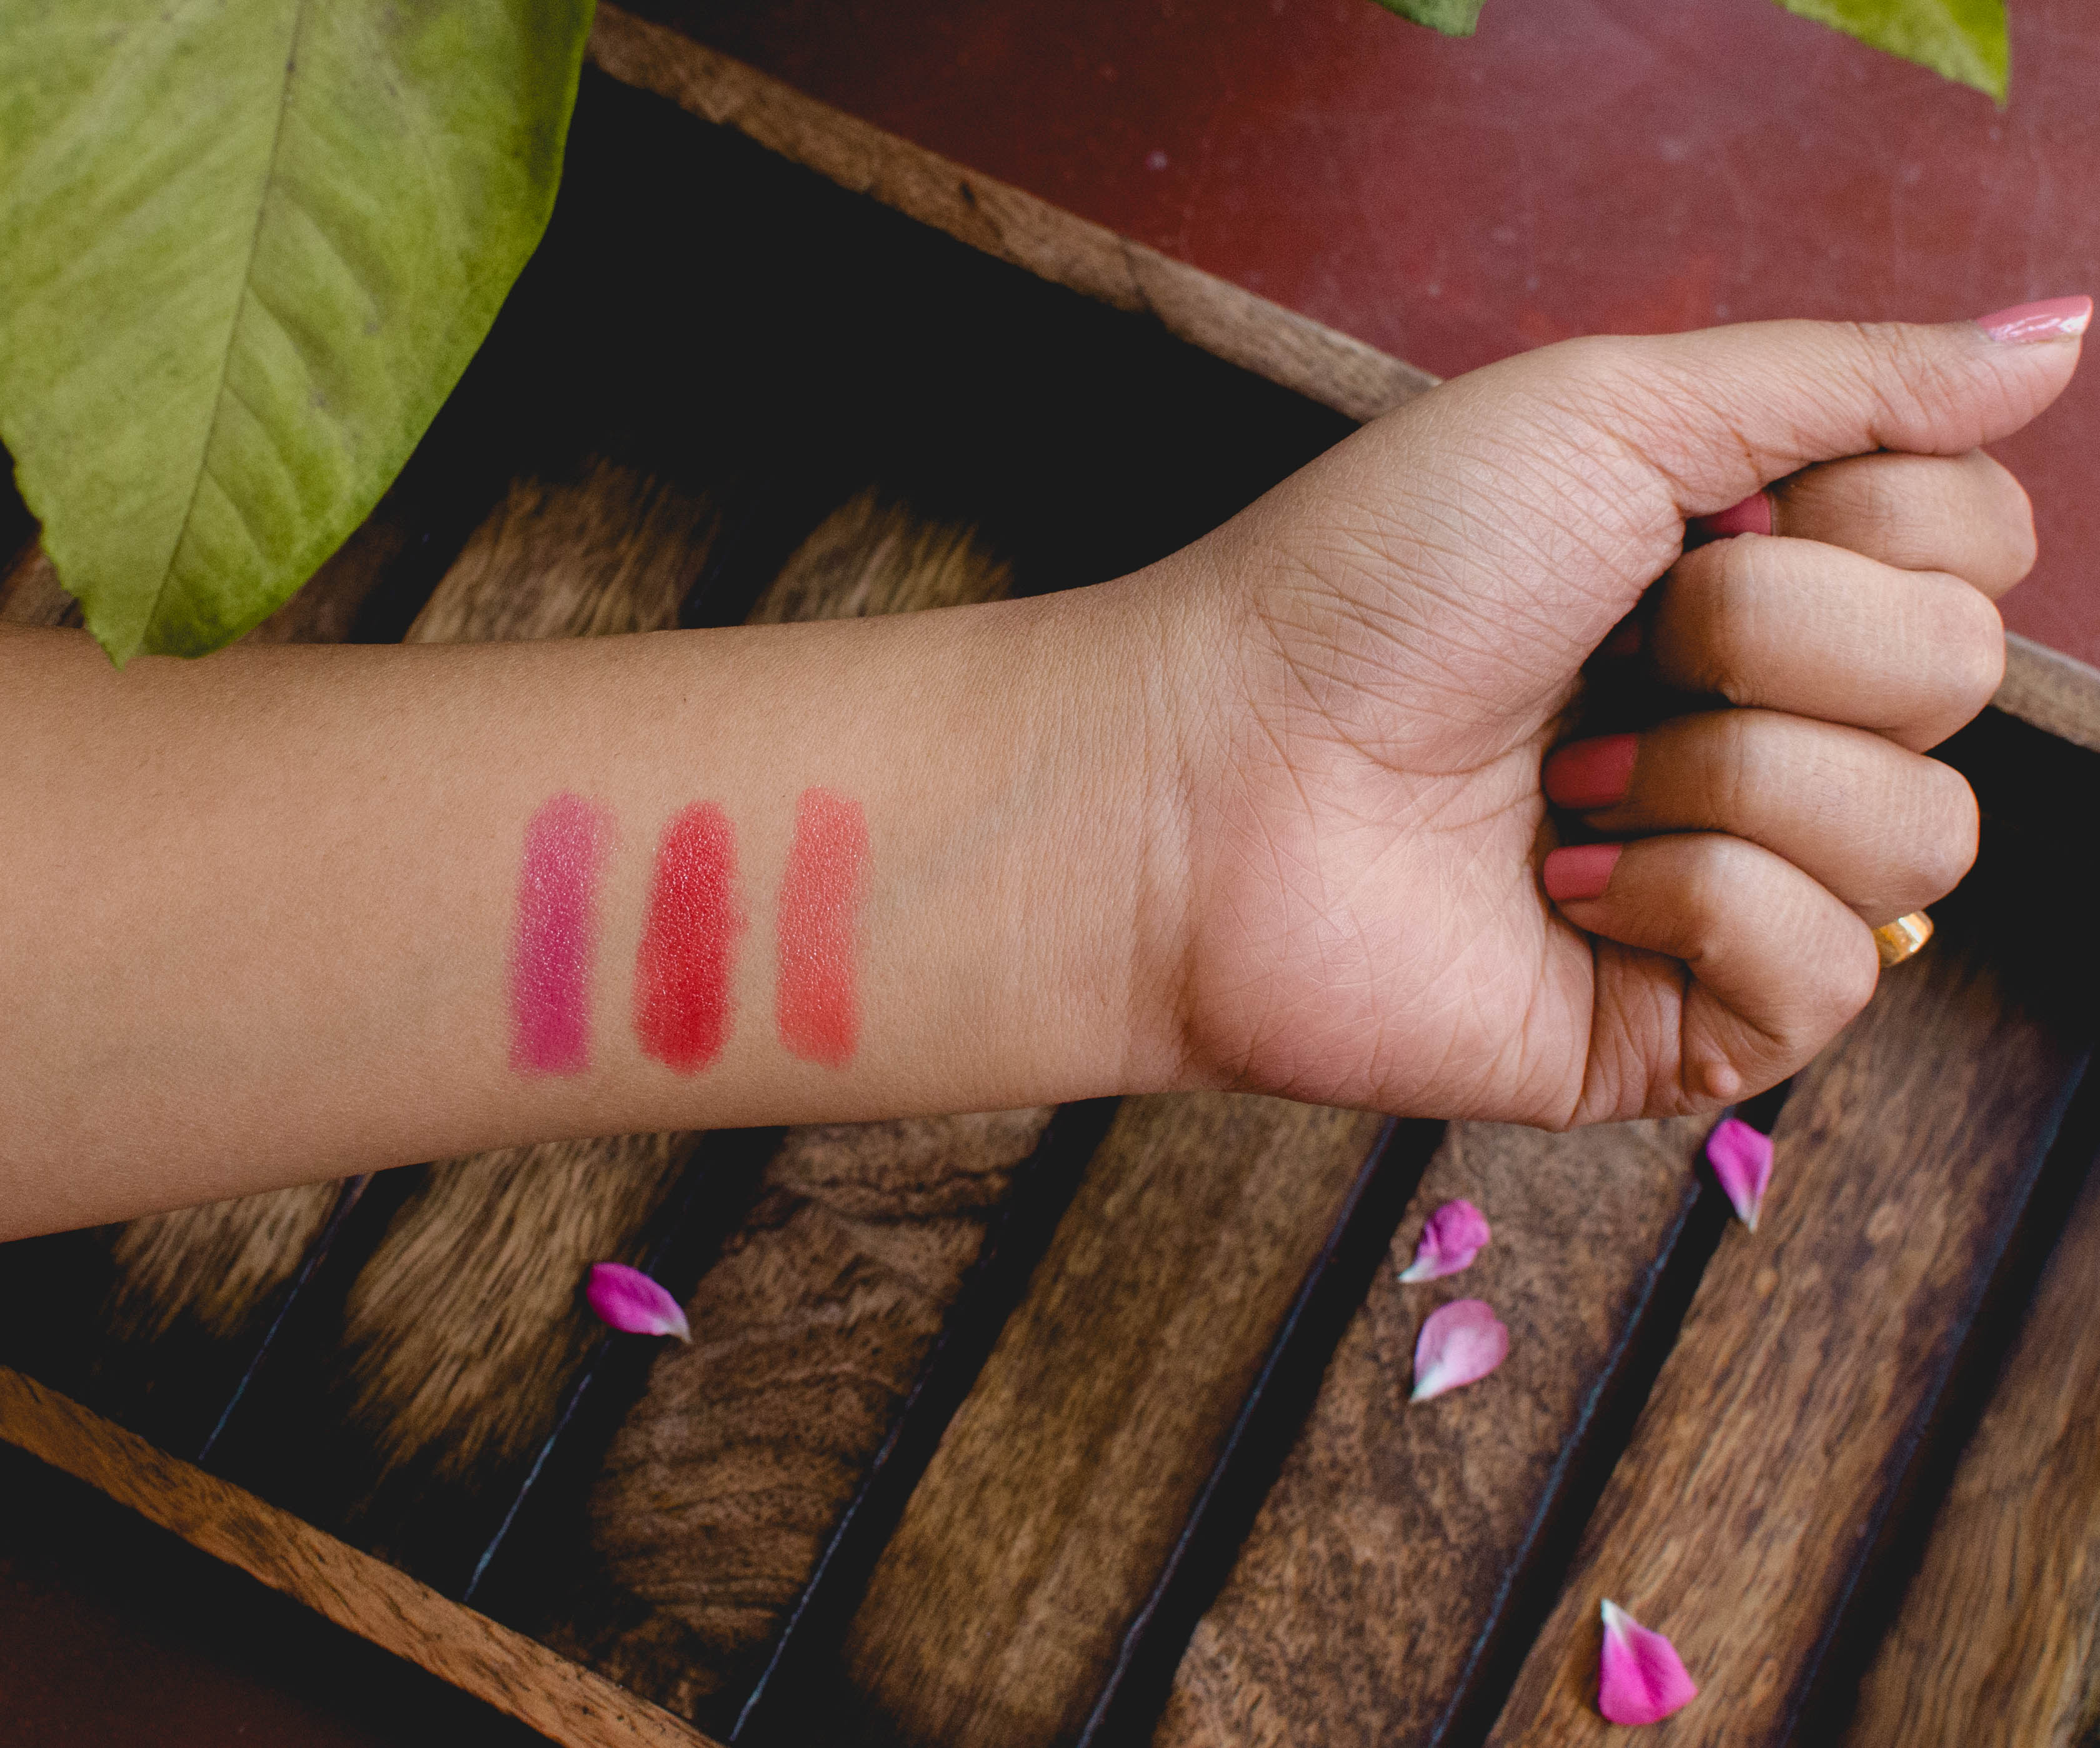 Nivea Coloron Lip Crayons Review and Swatches | Cherry On Top